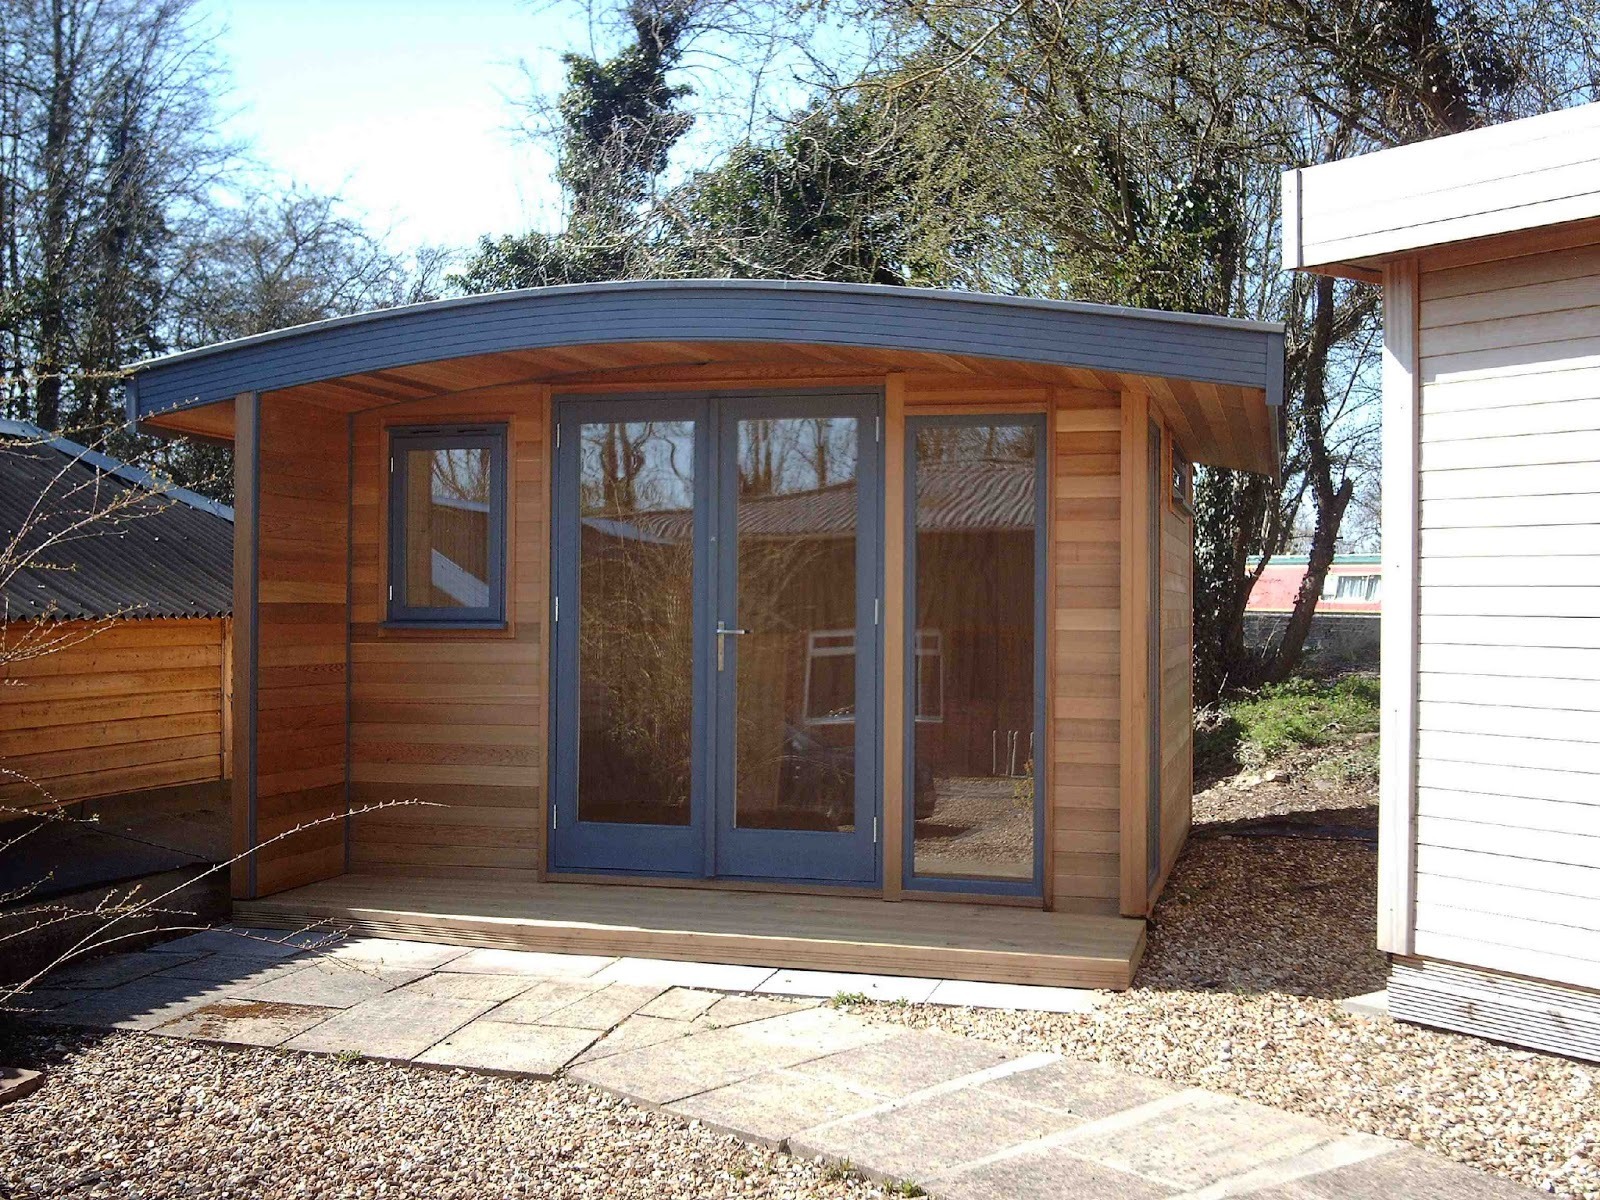 Shedworking curved roof garden office for Oeco garden office